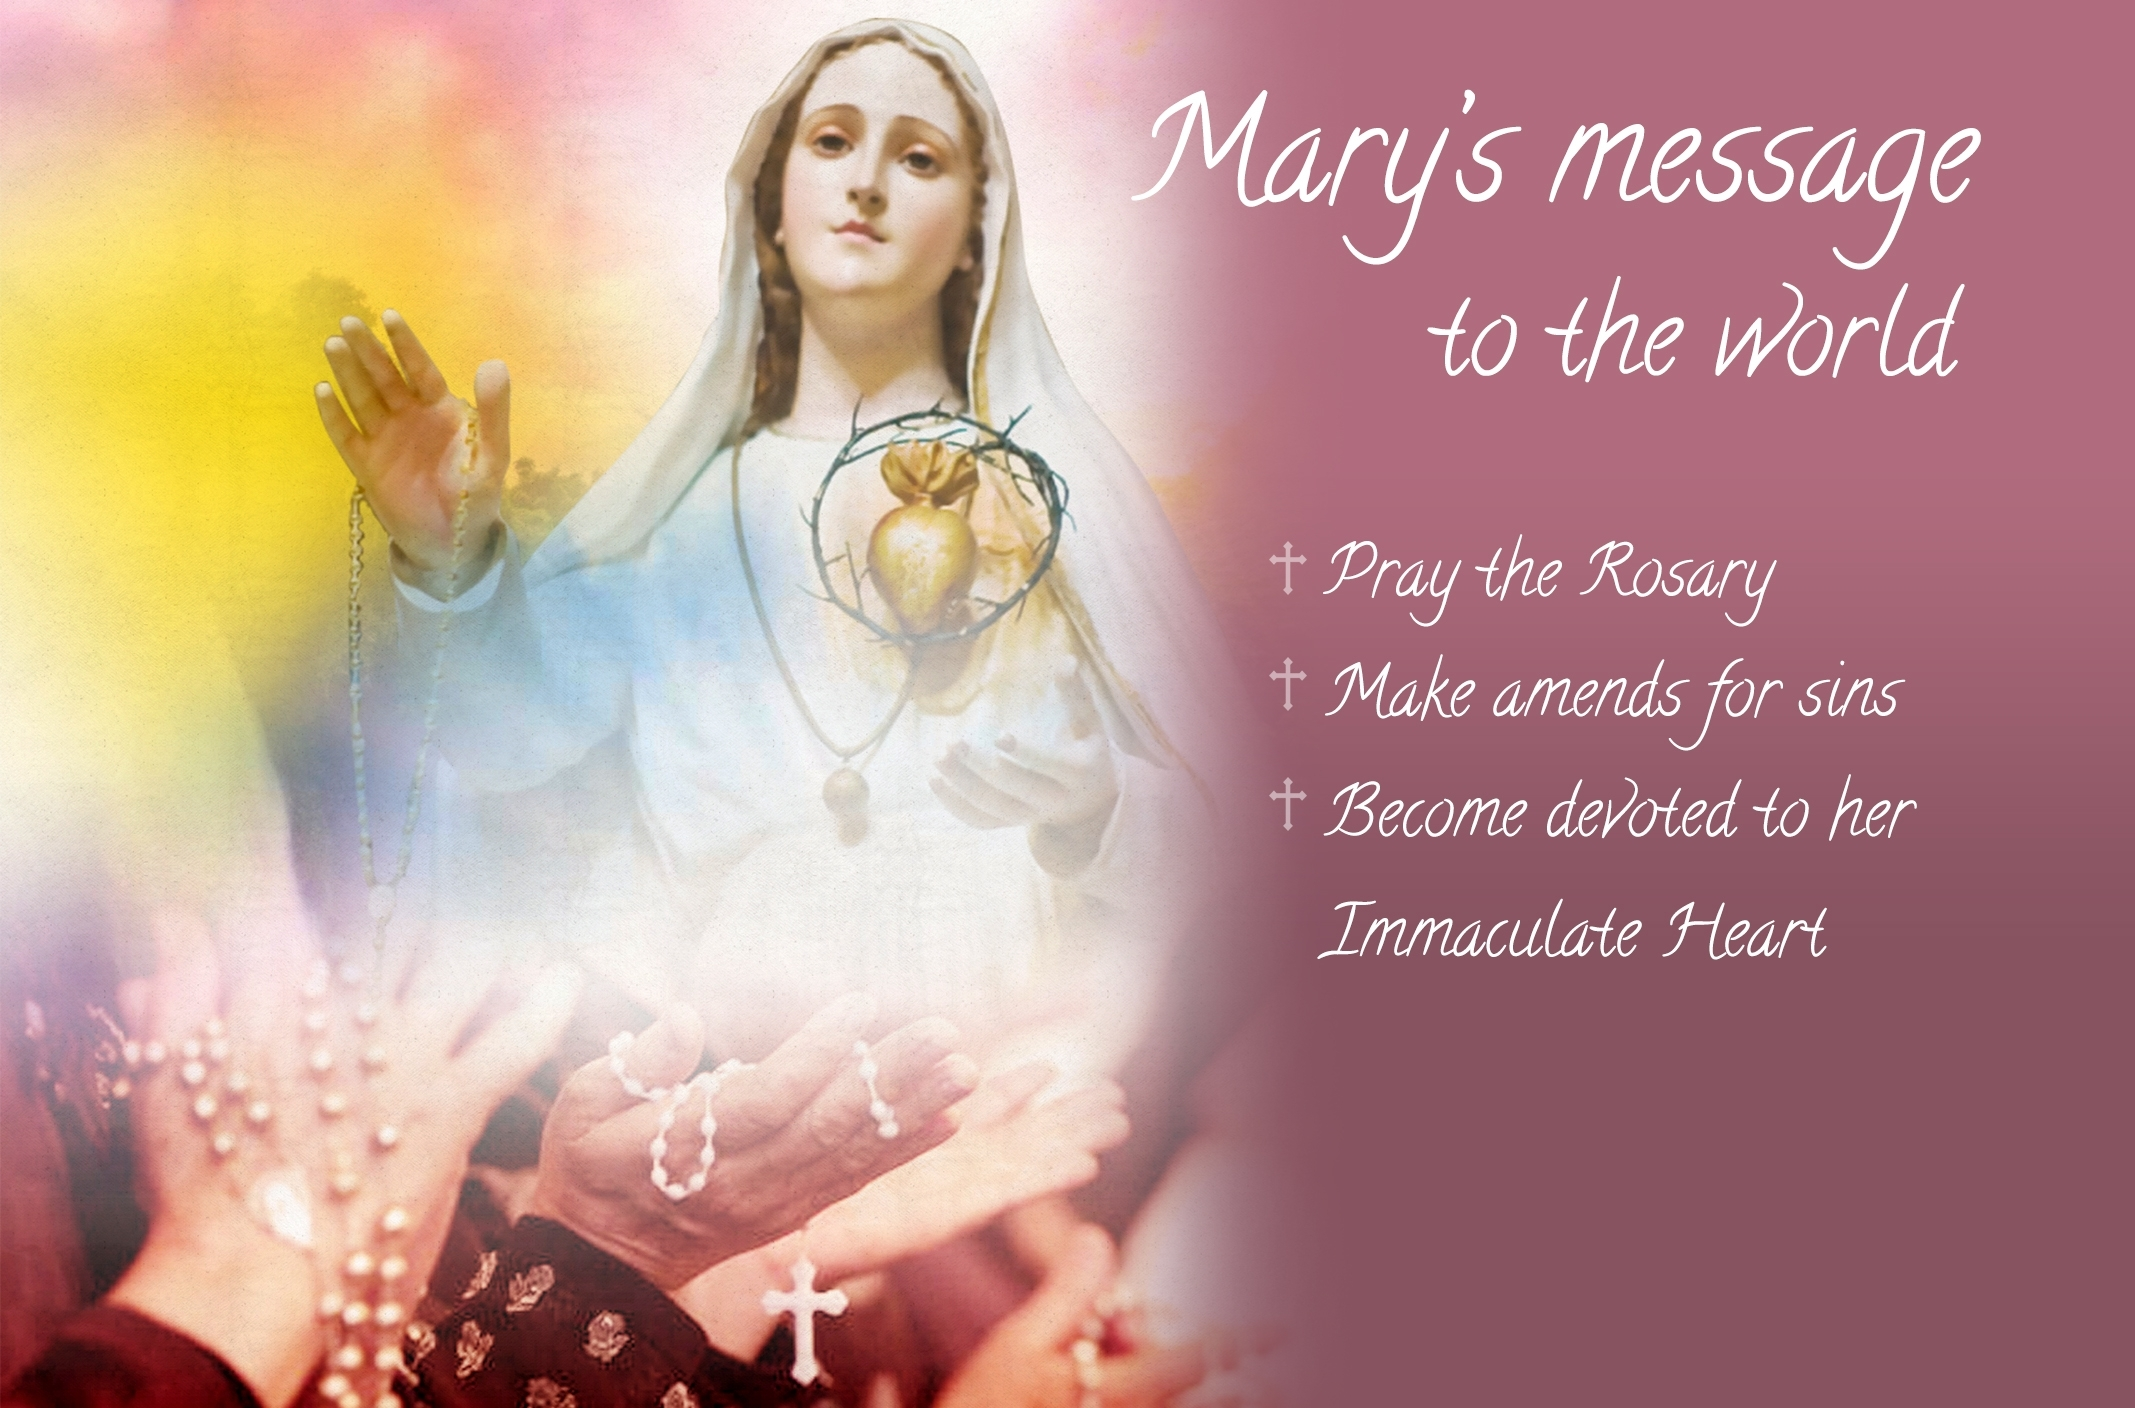 our lady of fatima desktop wallpaper - get your daily bread together